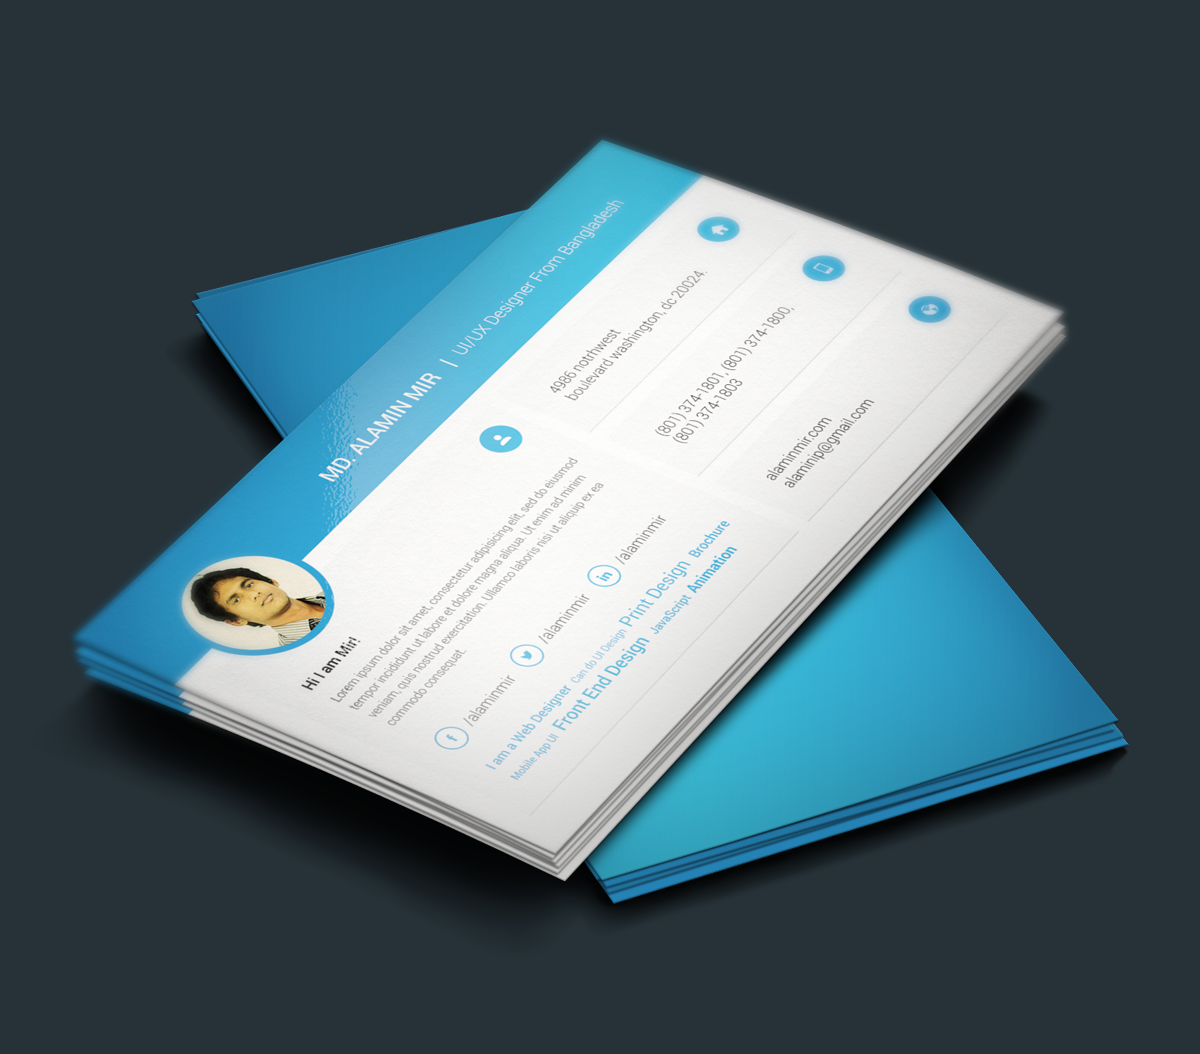 resume Resume Business Cards pin by workolio online on creative resumes pinterest template todays featured freebie at ultraupdates is a perfect resume design along with business card for web and graphic designers this